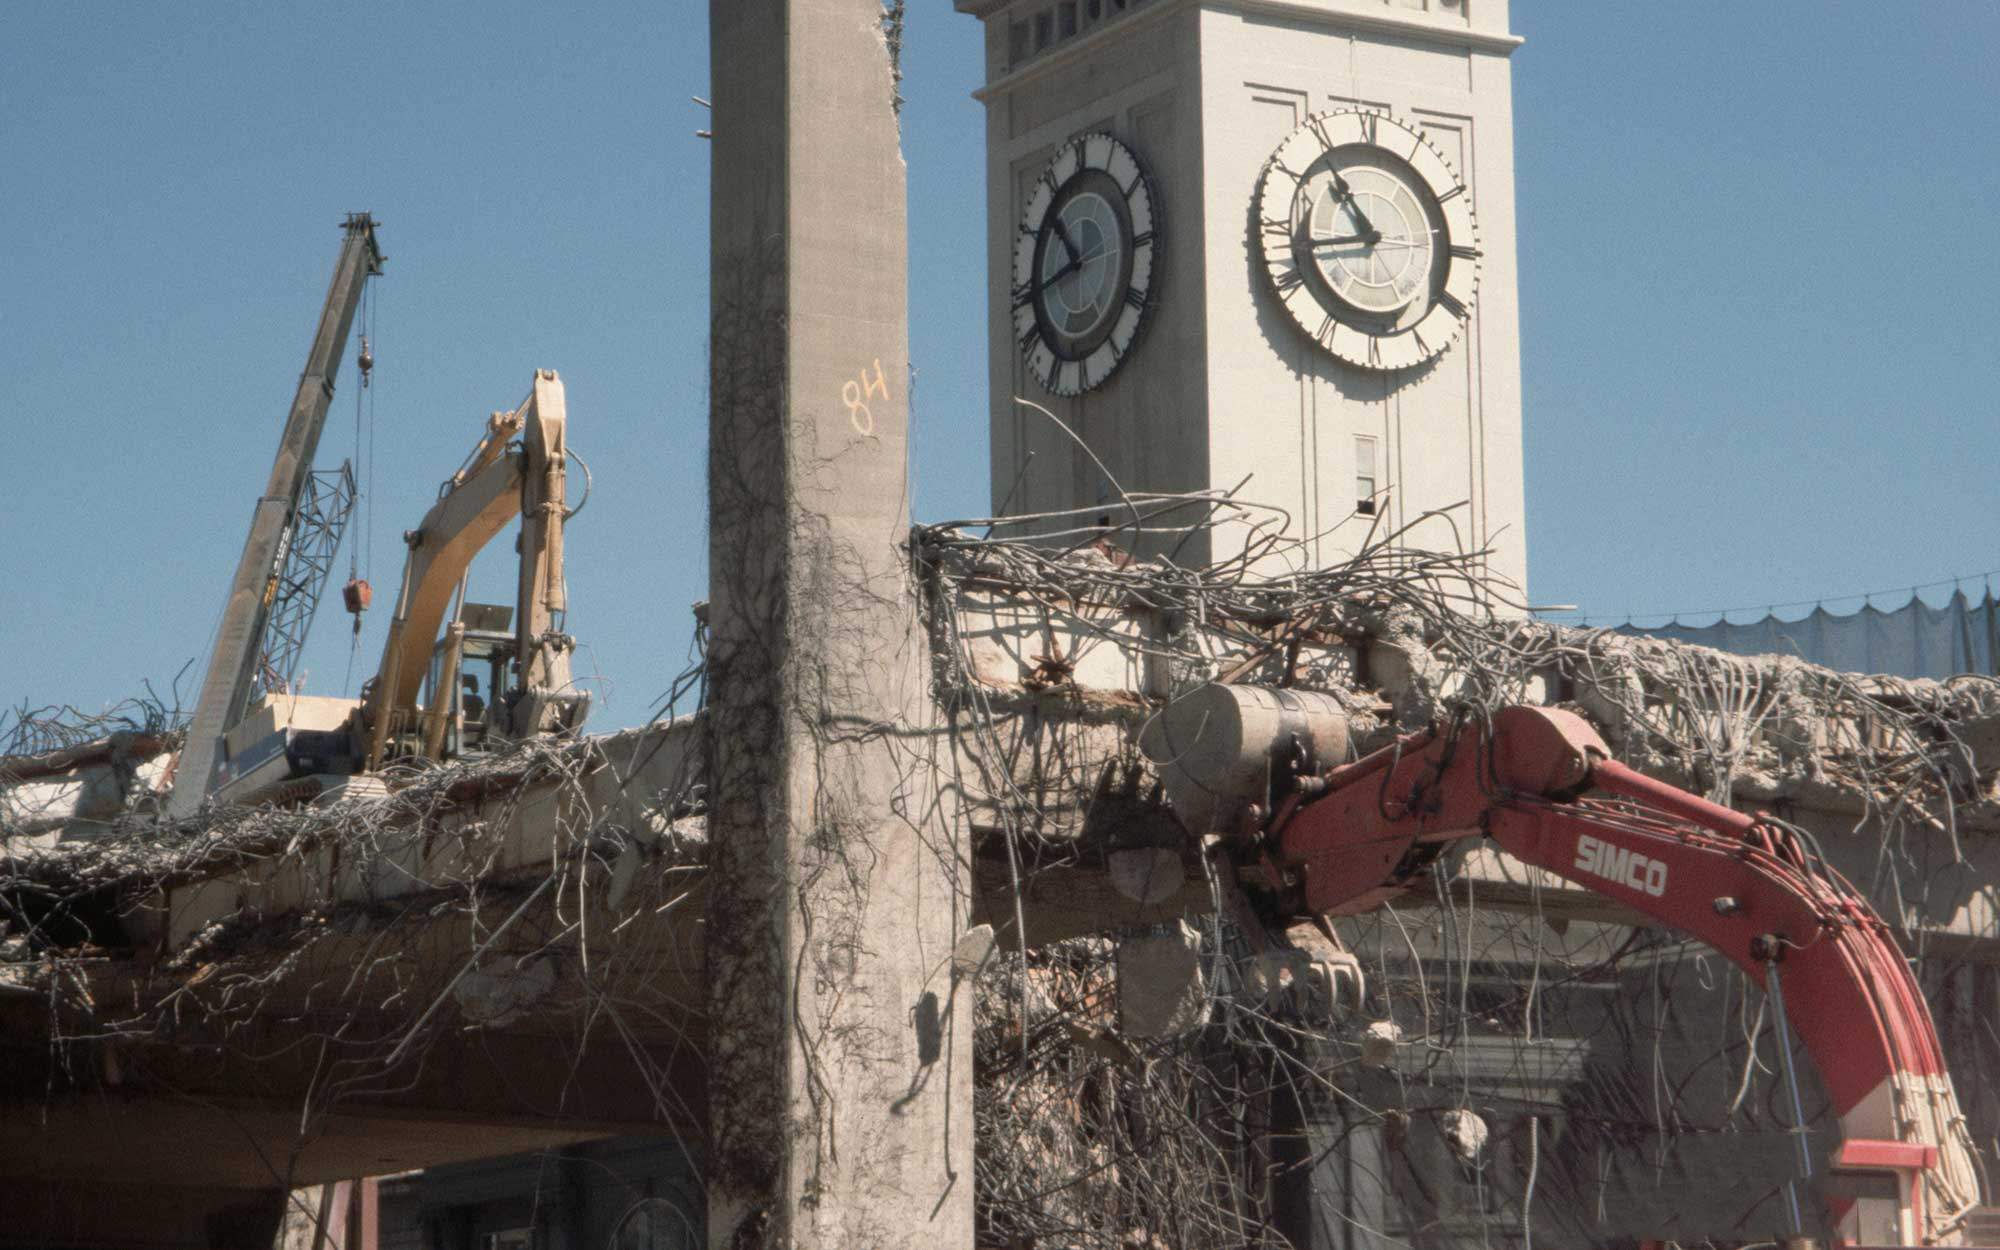 Demolishing the Embarcadero Freeway